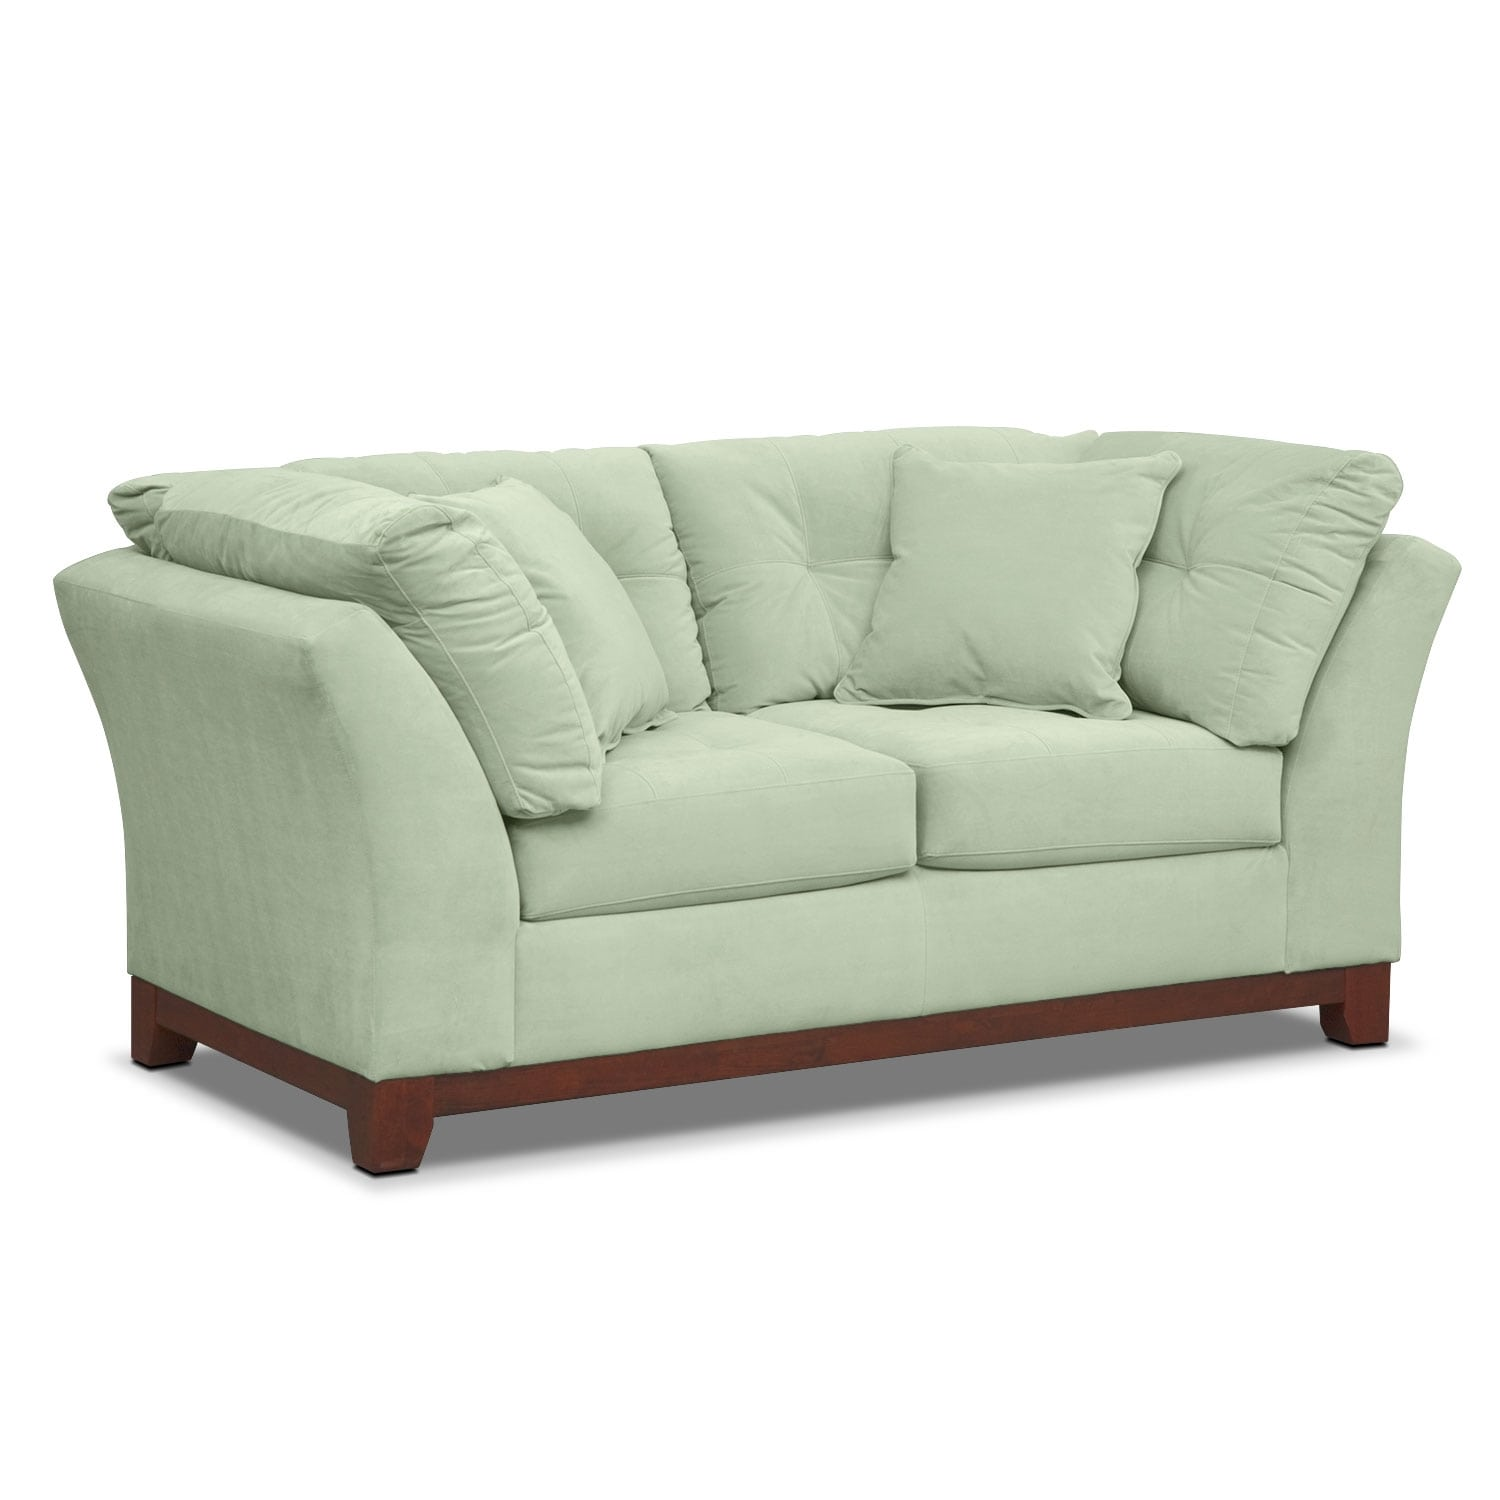 [Solace Spa Loveseat]